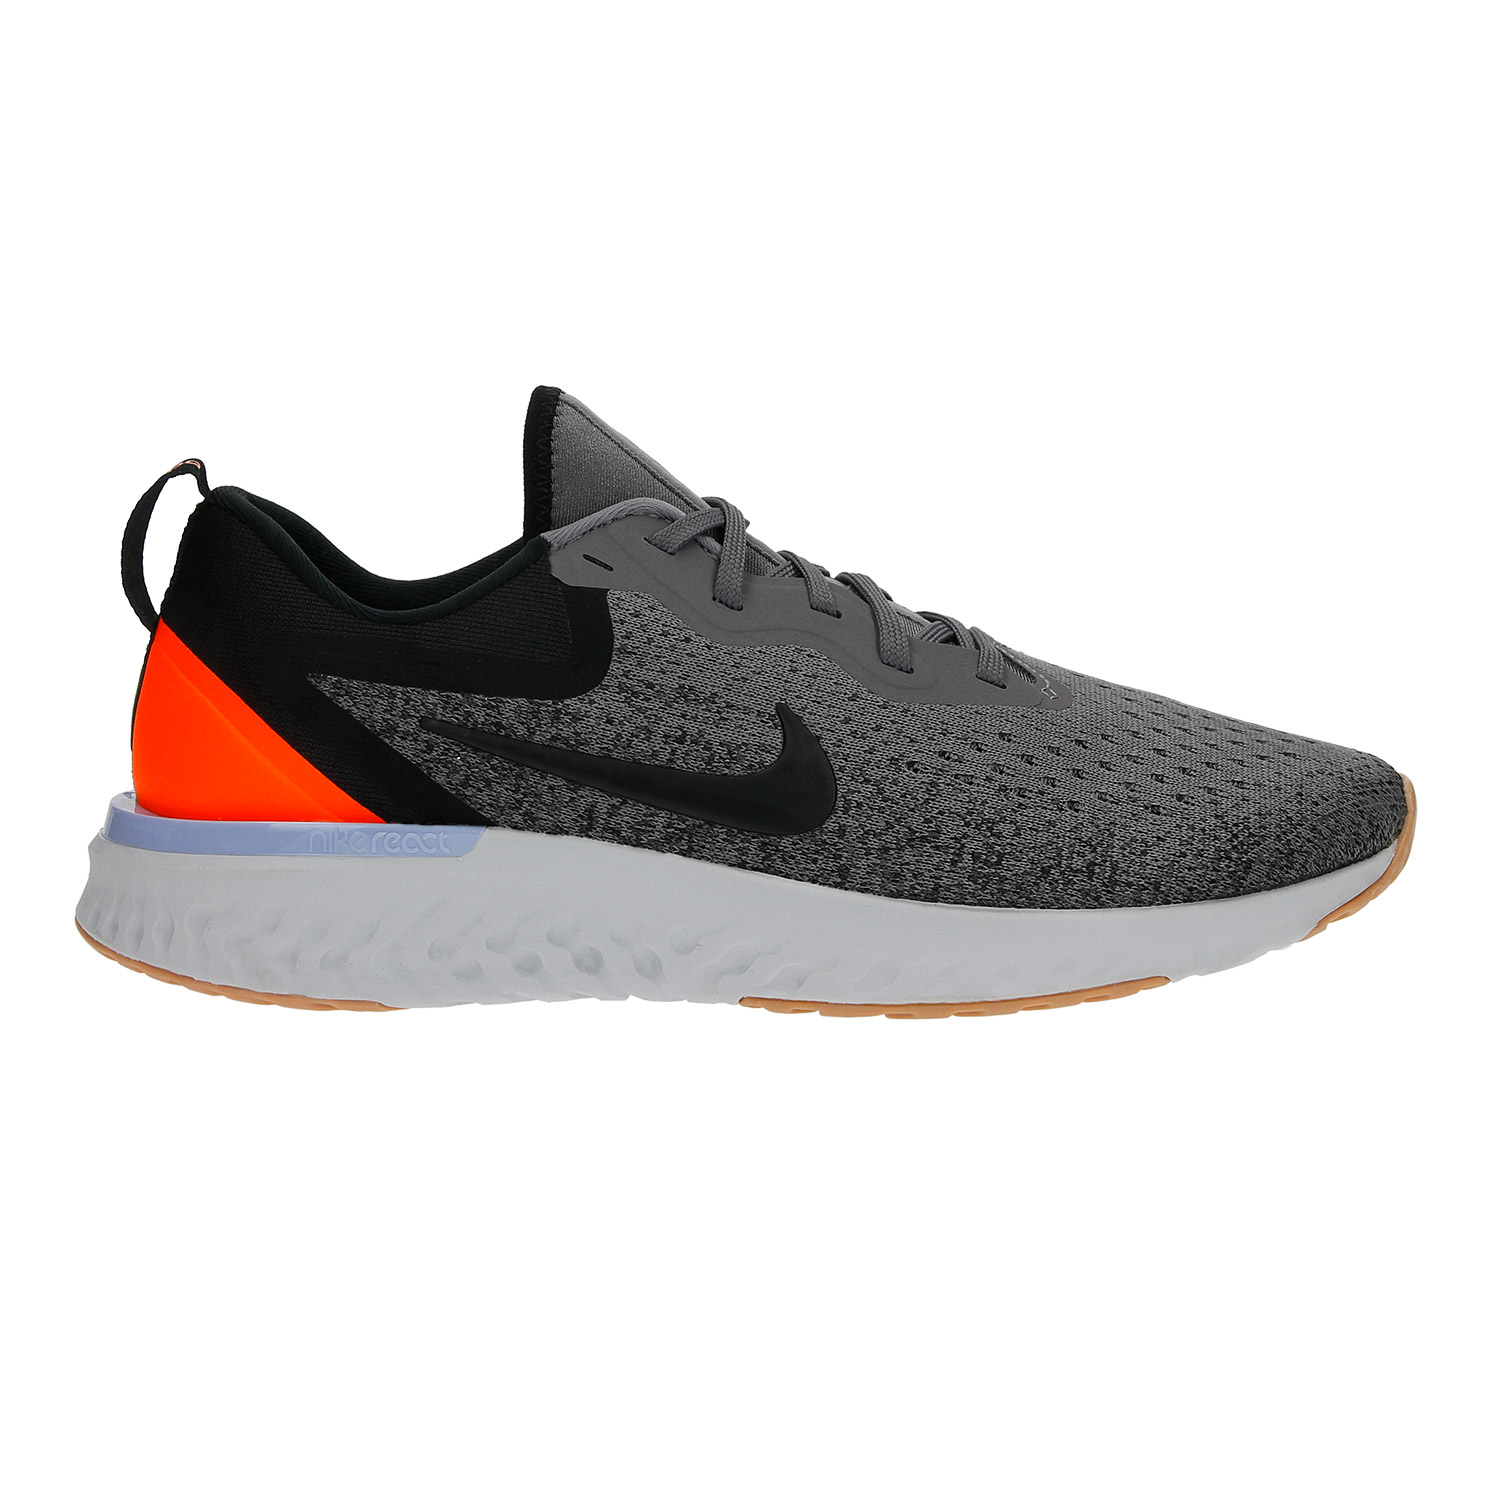 half off 2b834 2a783 Nike Odyssey React Women s Running Shoes   Grey Orange